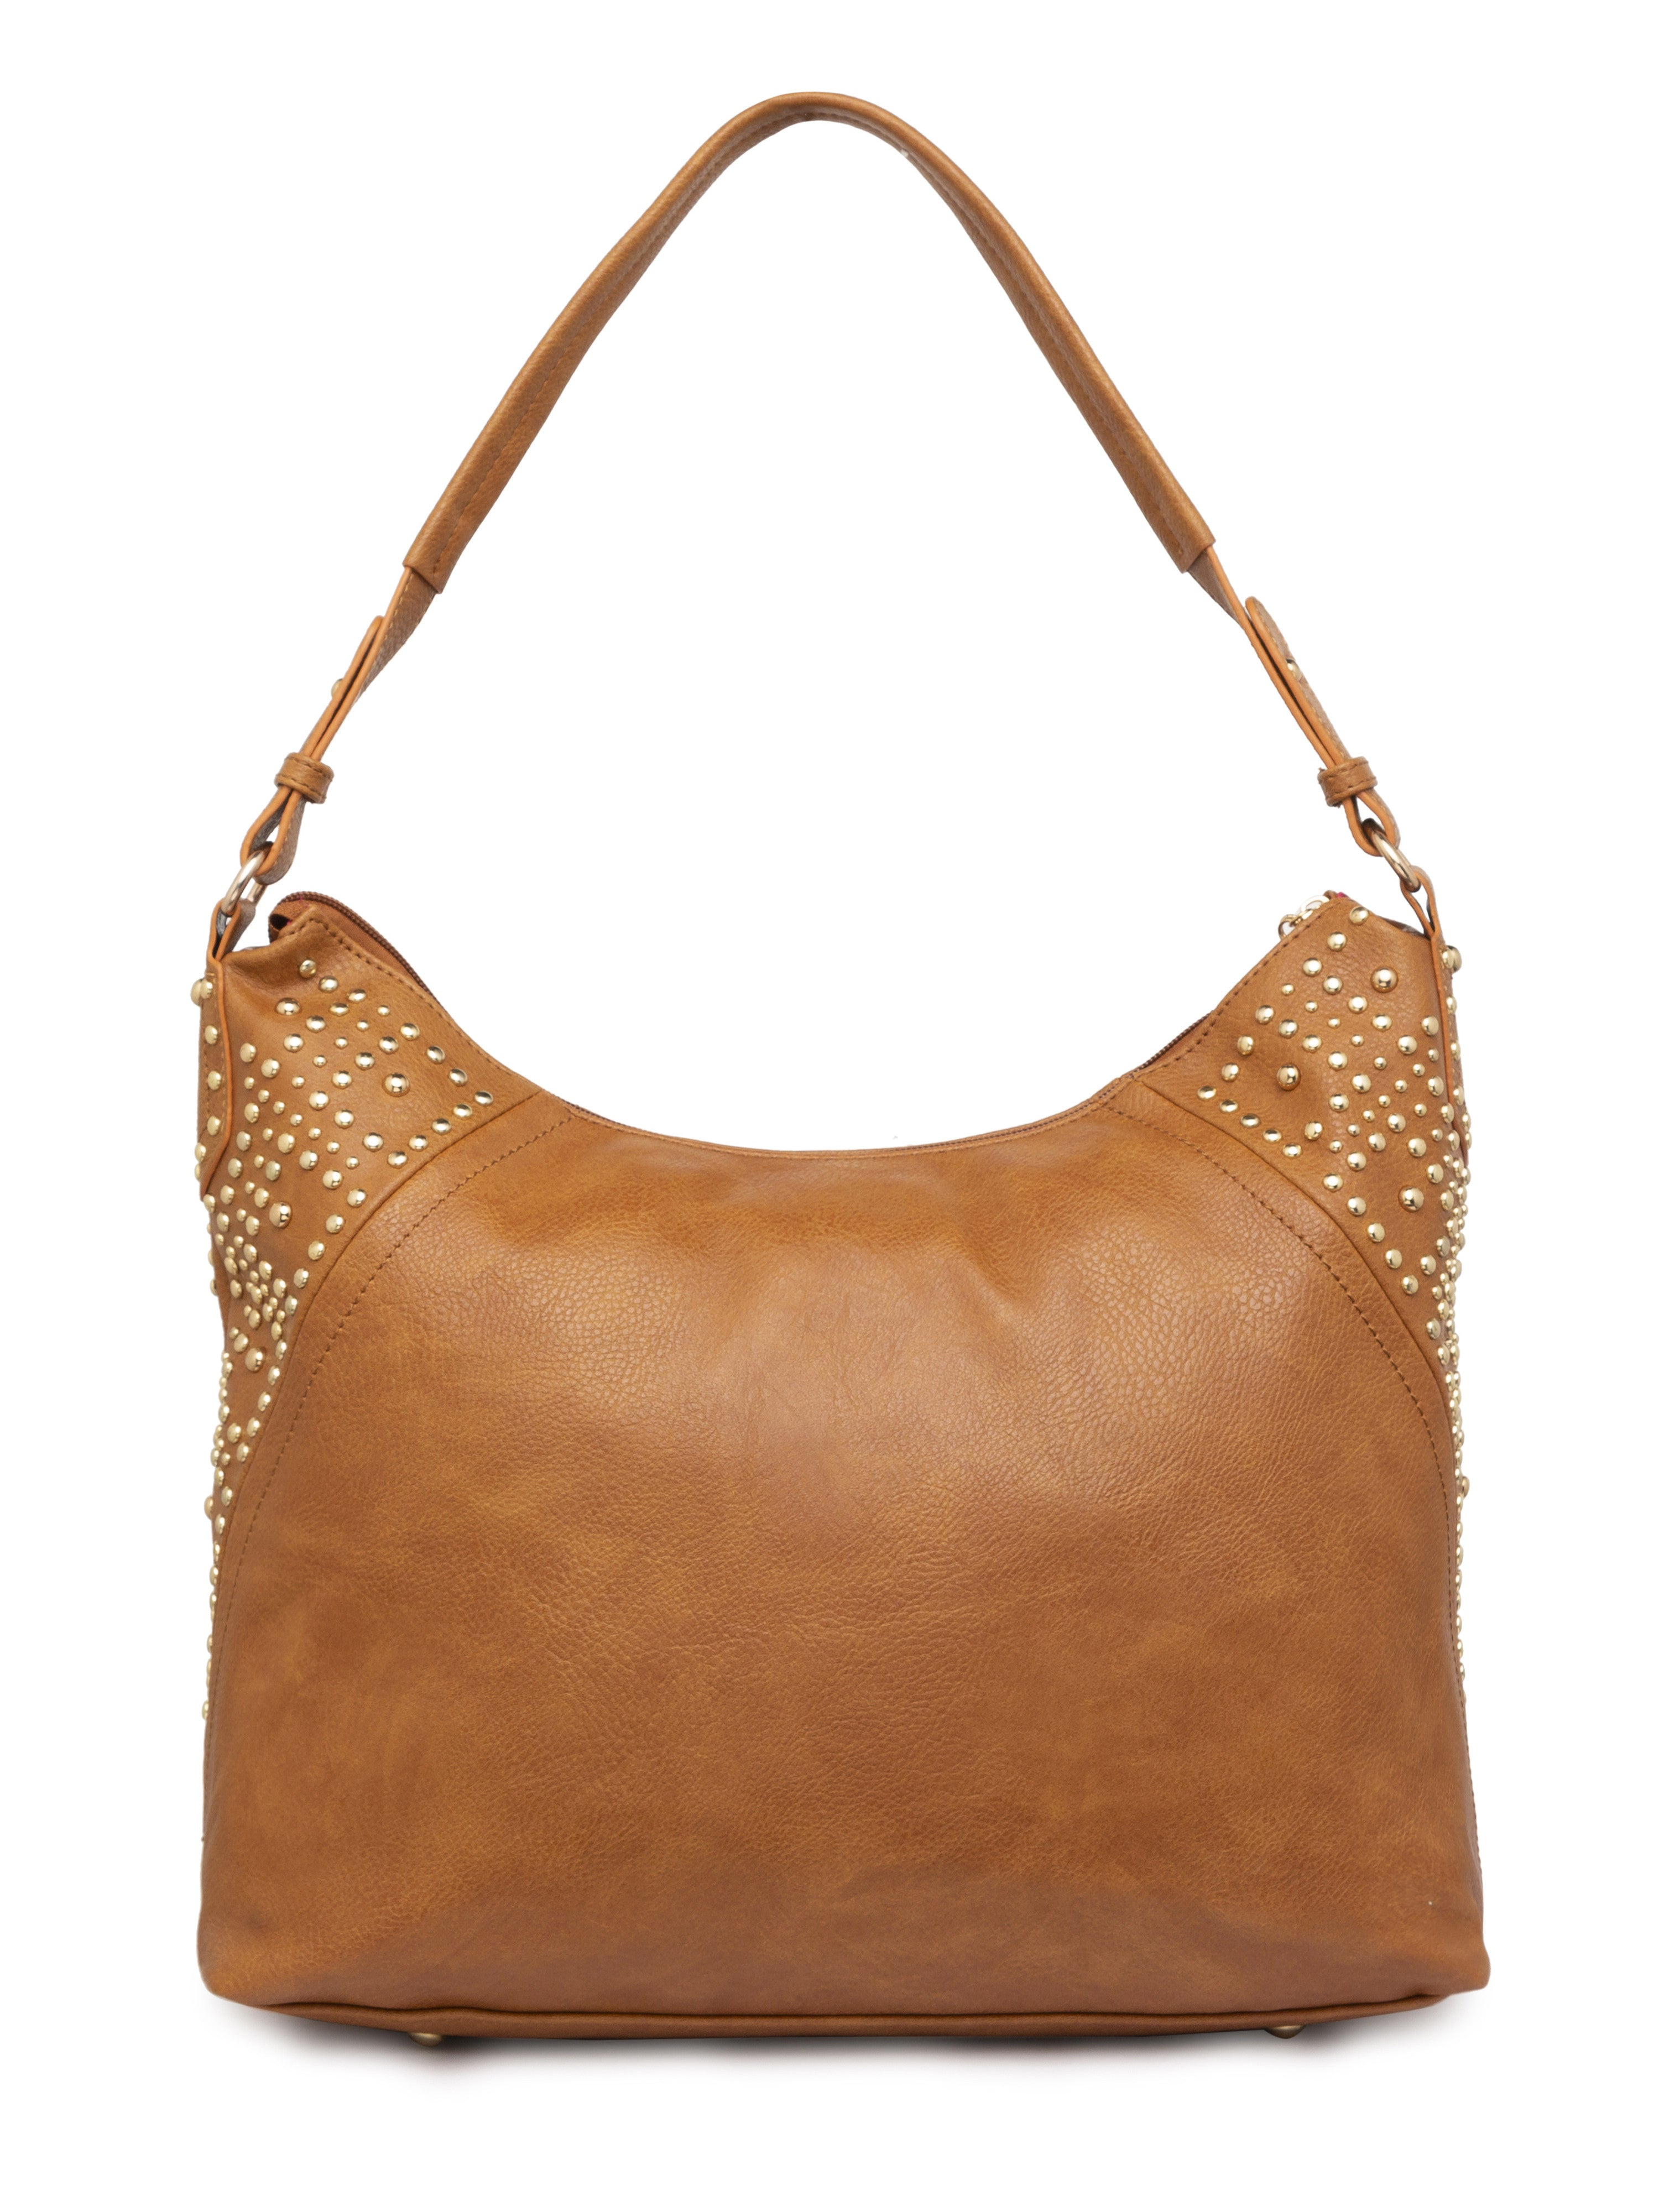 Rivet Studded Tan Tote Bag-2